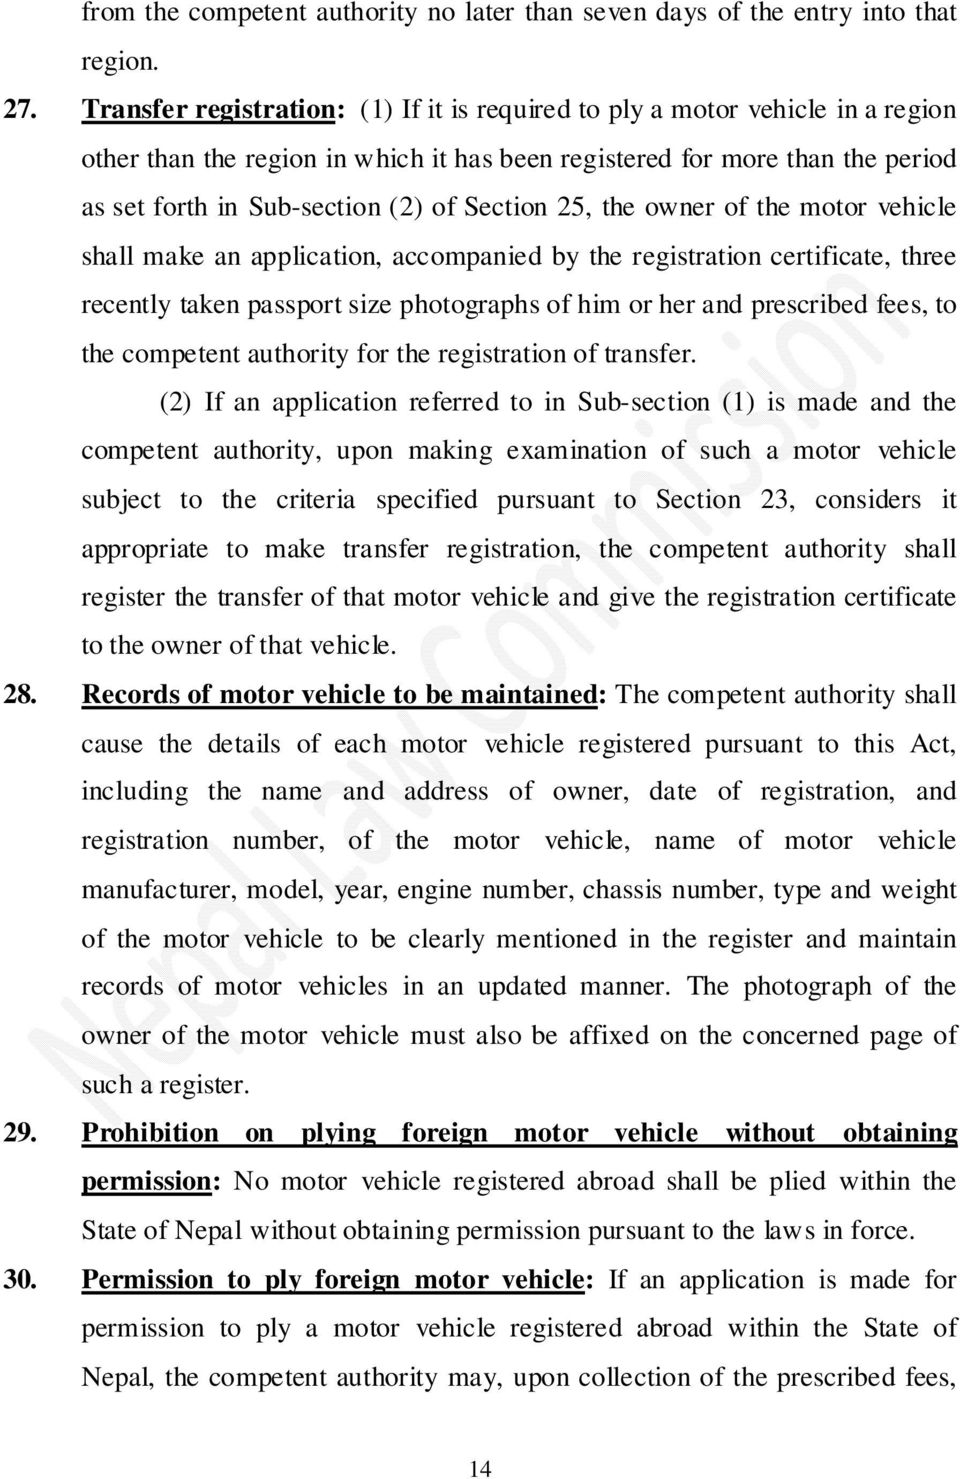 Section 25, the owner of the motor vehicle shall make an application, accompanied by the registration certificate, three recently taken passport size photographs of him or her and prescribed fees, to